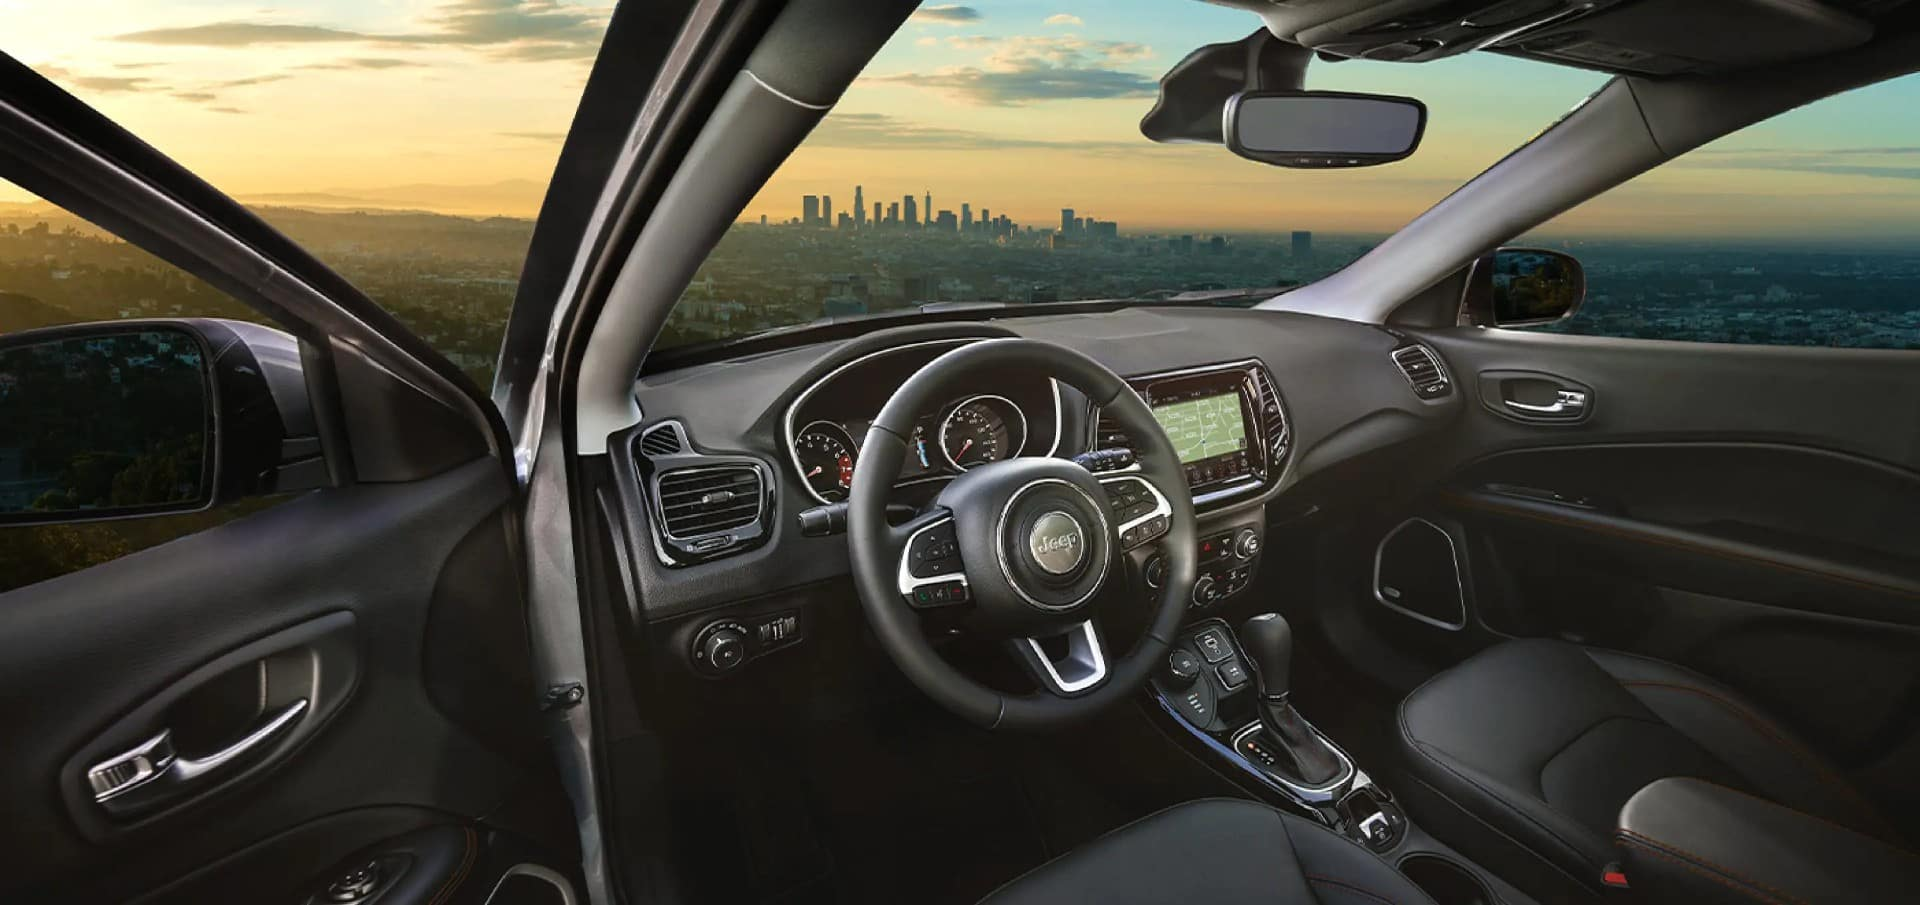 picture of jeep compass 2021 stearing wheel front seat interior for sale in Hooksett New Hampshire